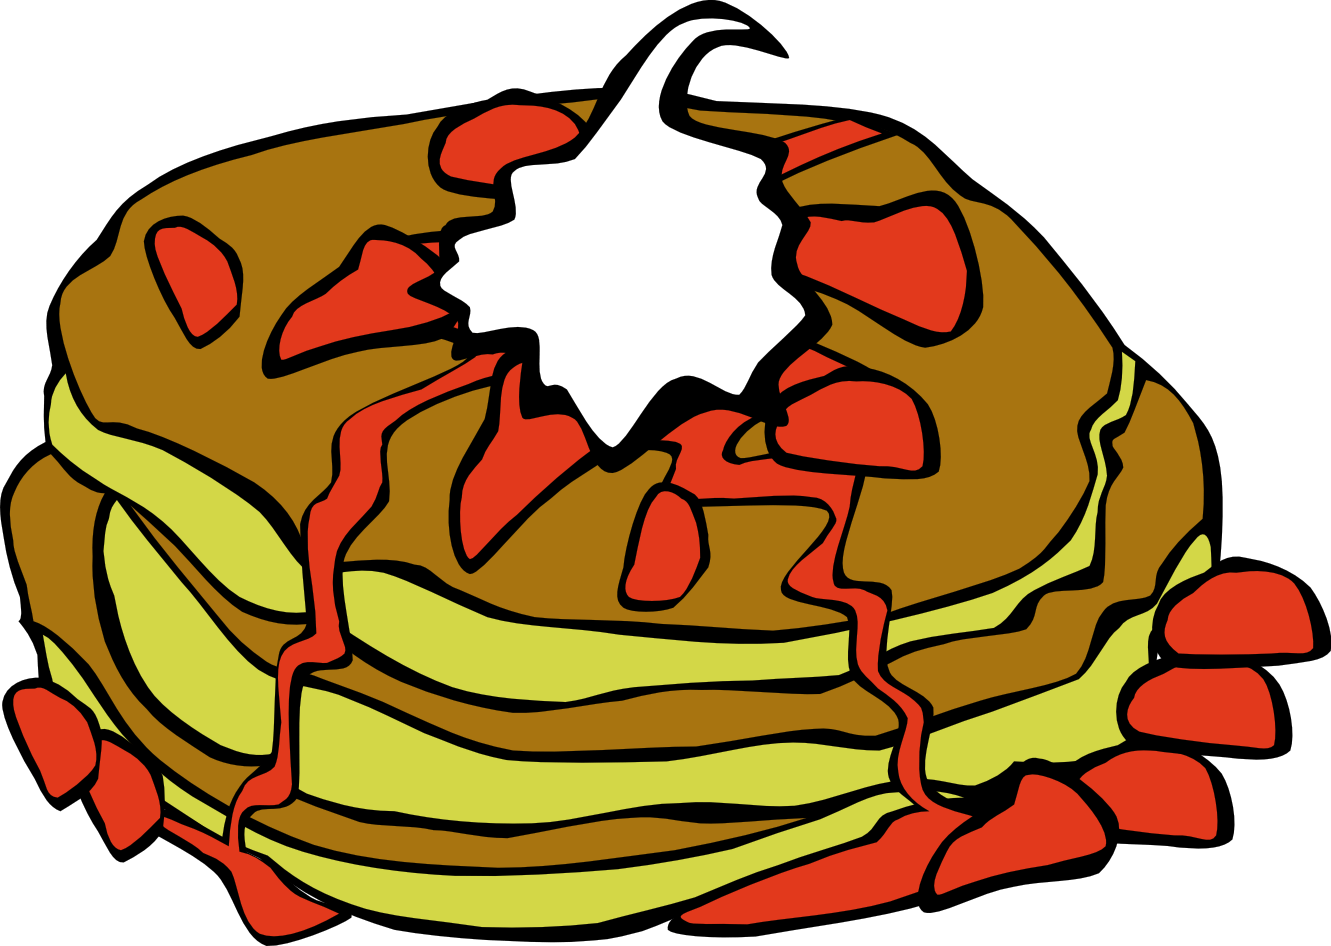 hight resolution of breakfast clipart 0 crepes for breakfast clip art free image